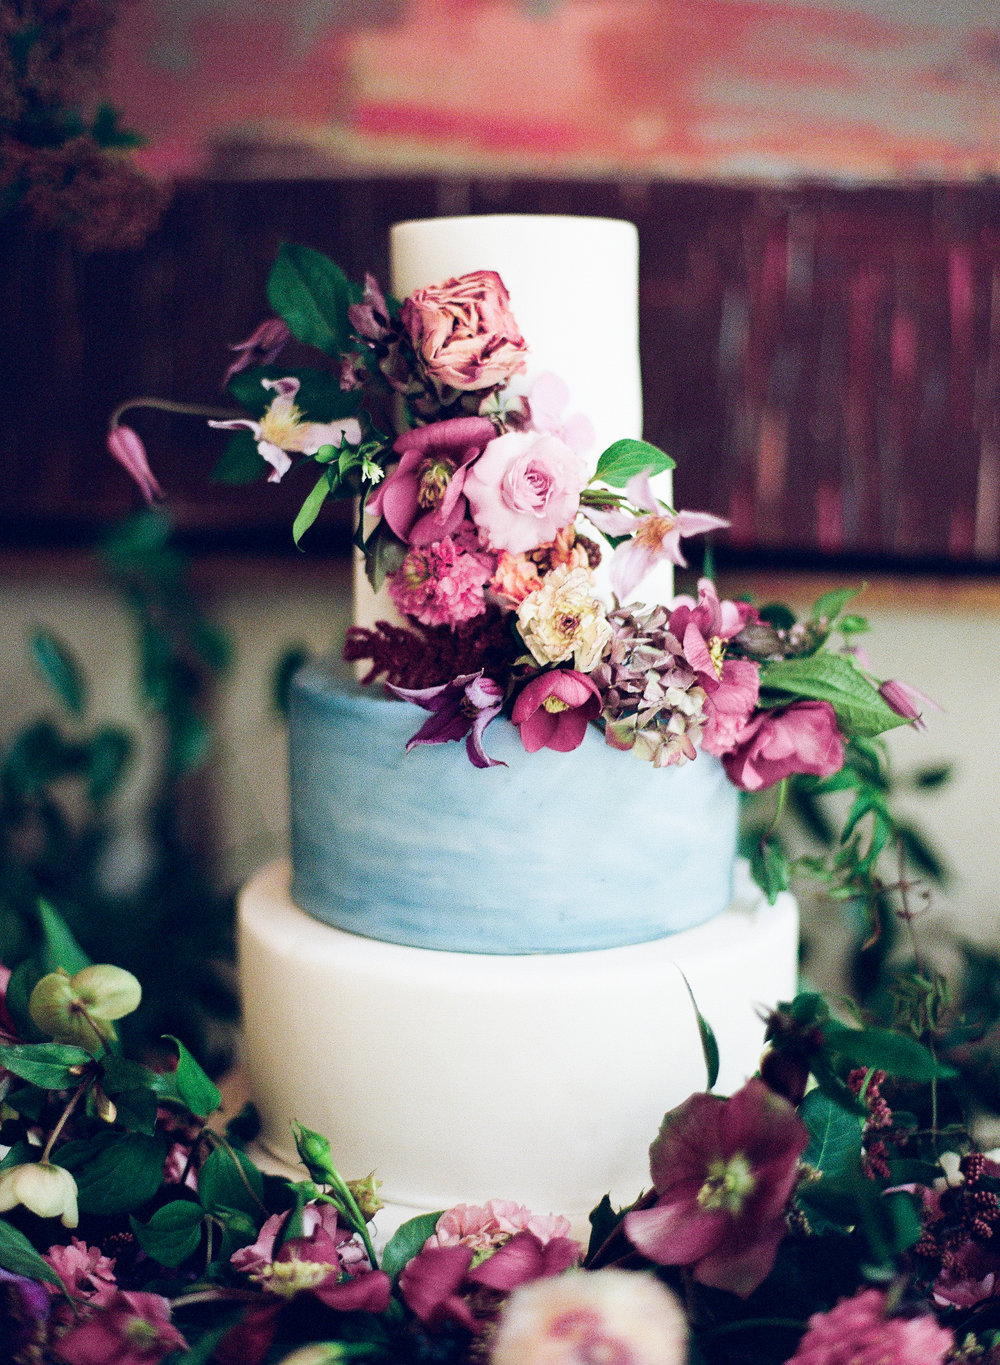 flower wedding cake | The Wildflowers is an event planning and design company inspiring stylish brides and grooms to dream a better dream for their wedding day. Follow along on instagram: @ thewildflowers_com